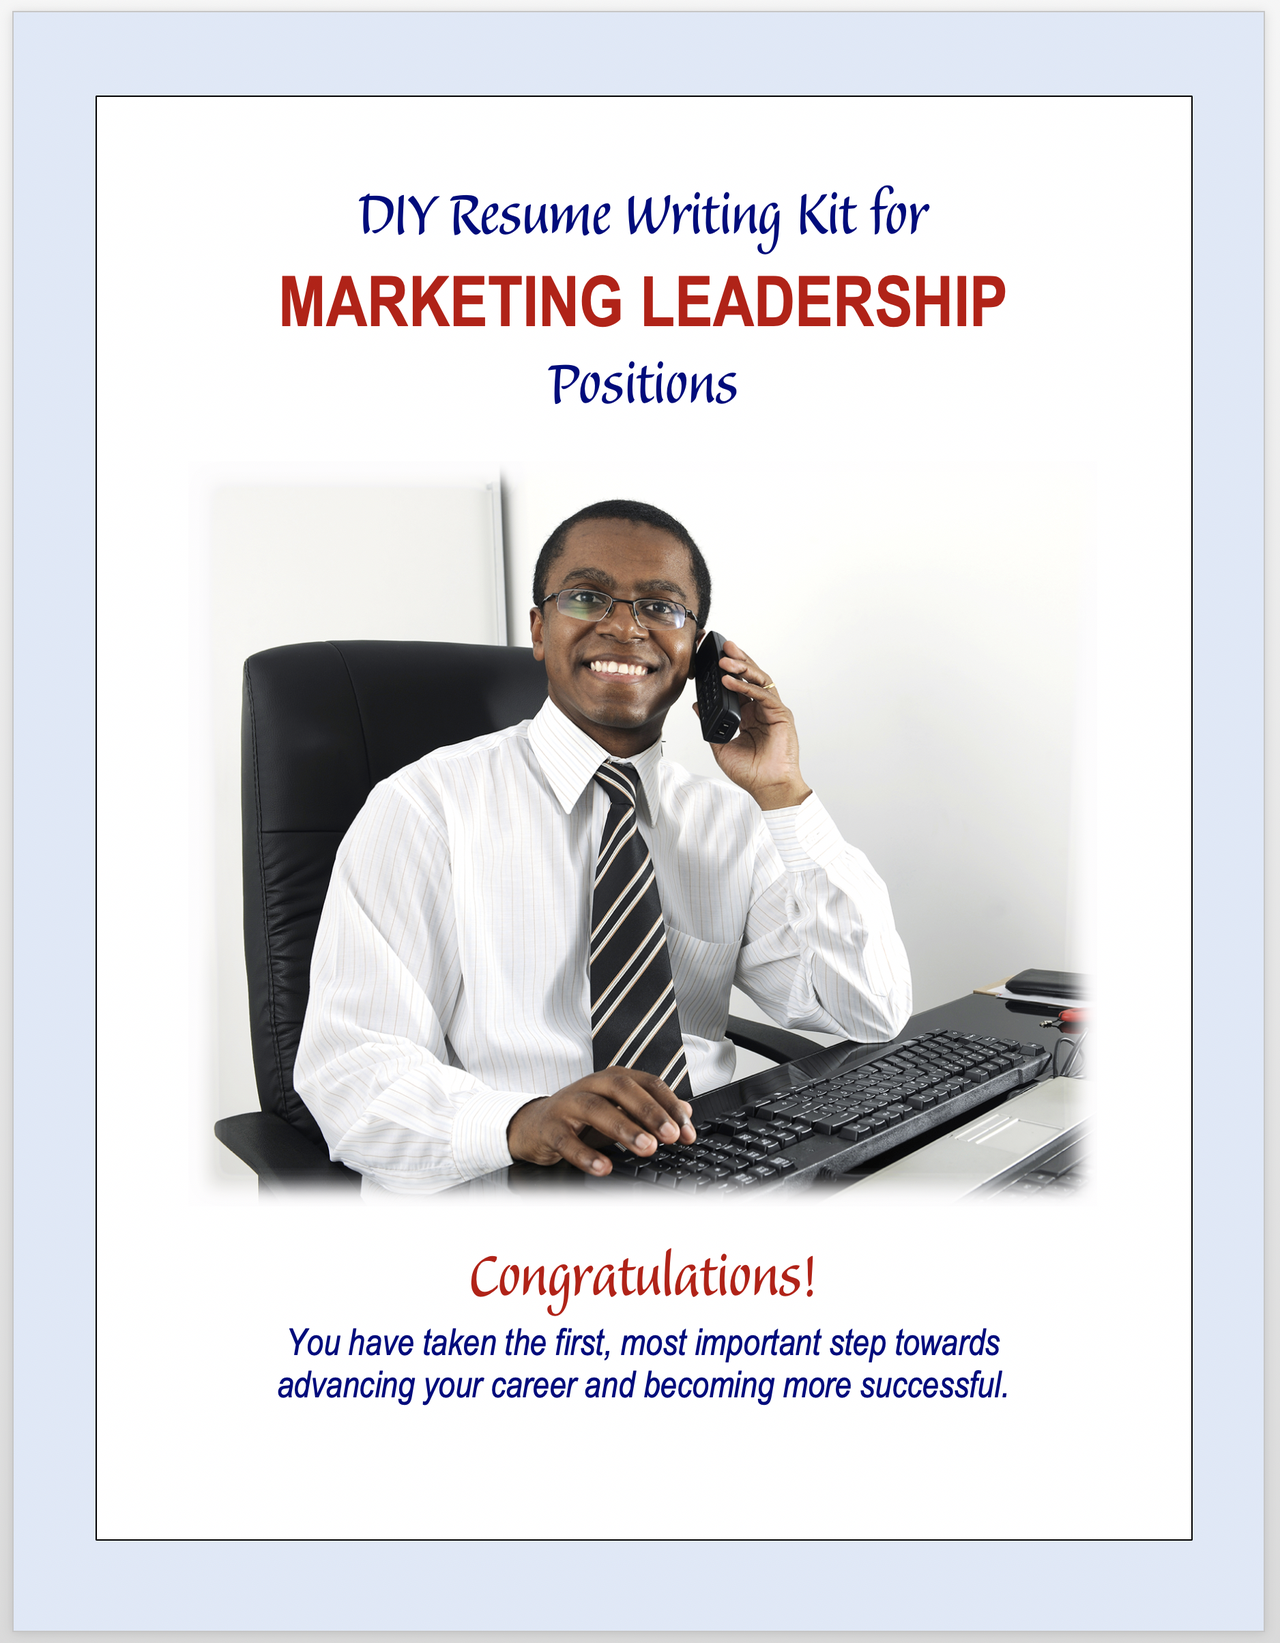 marketing leadership.png